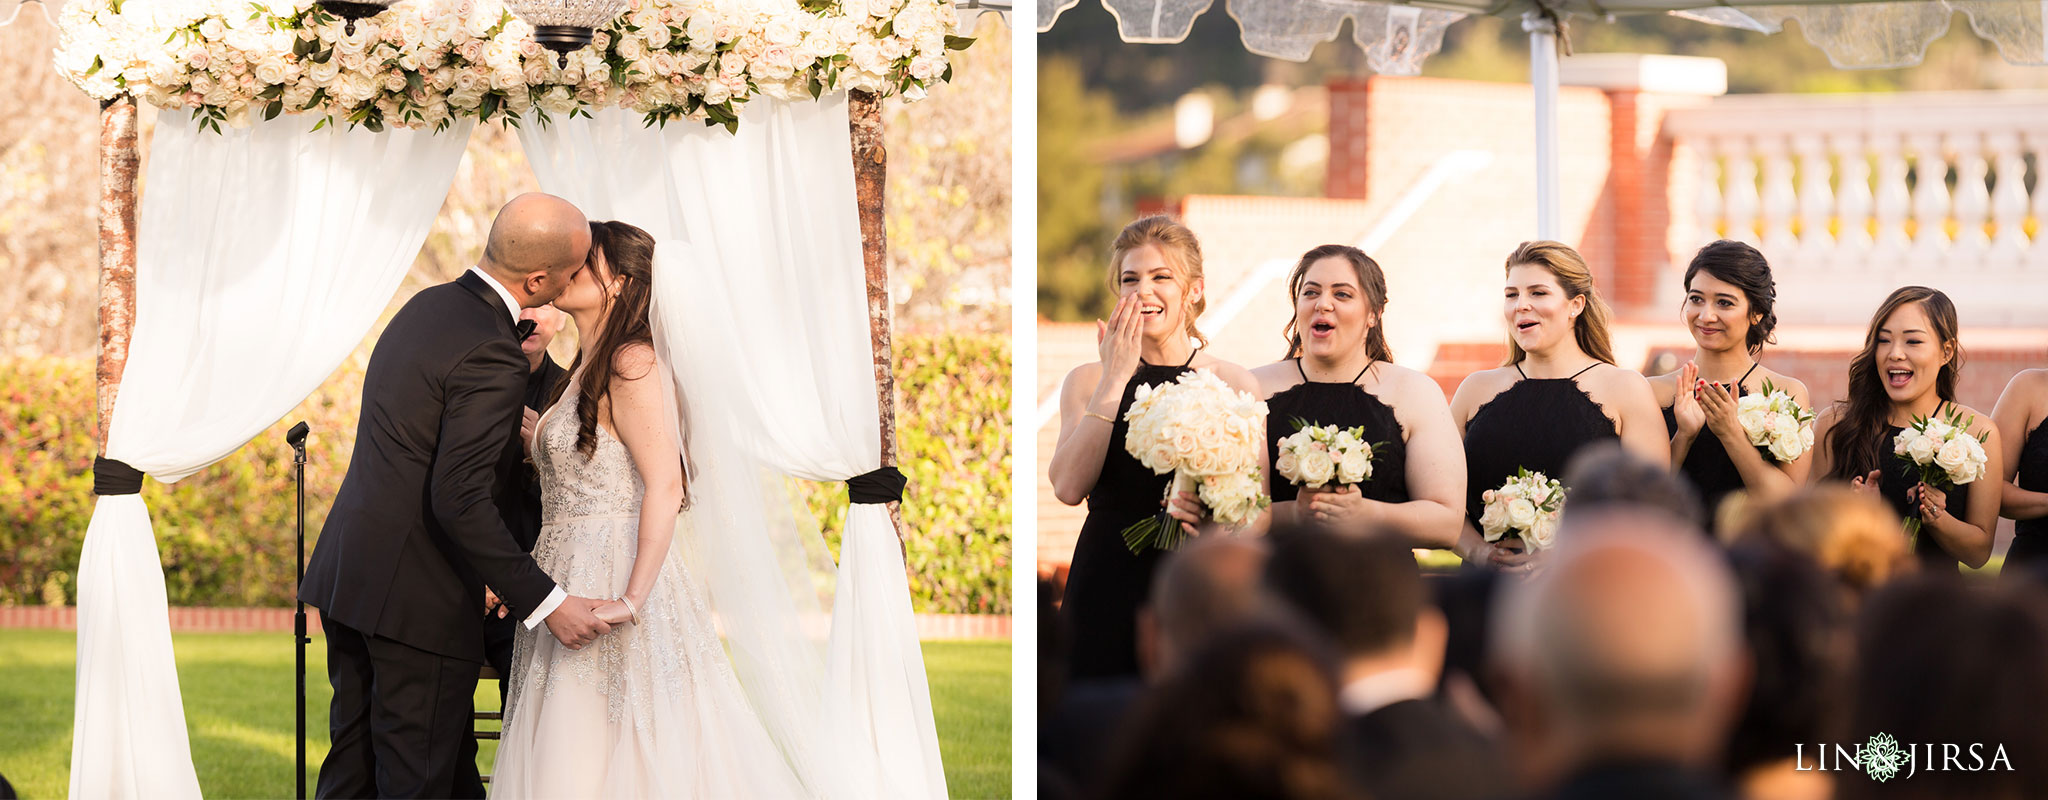 23 sherwood country club ventura county wedding ceremony photography